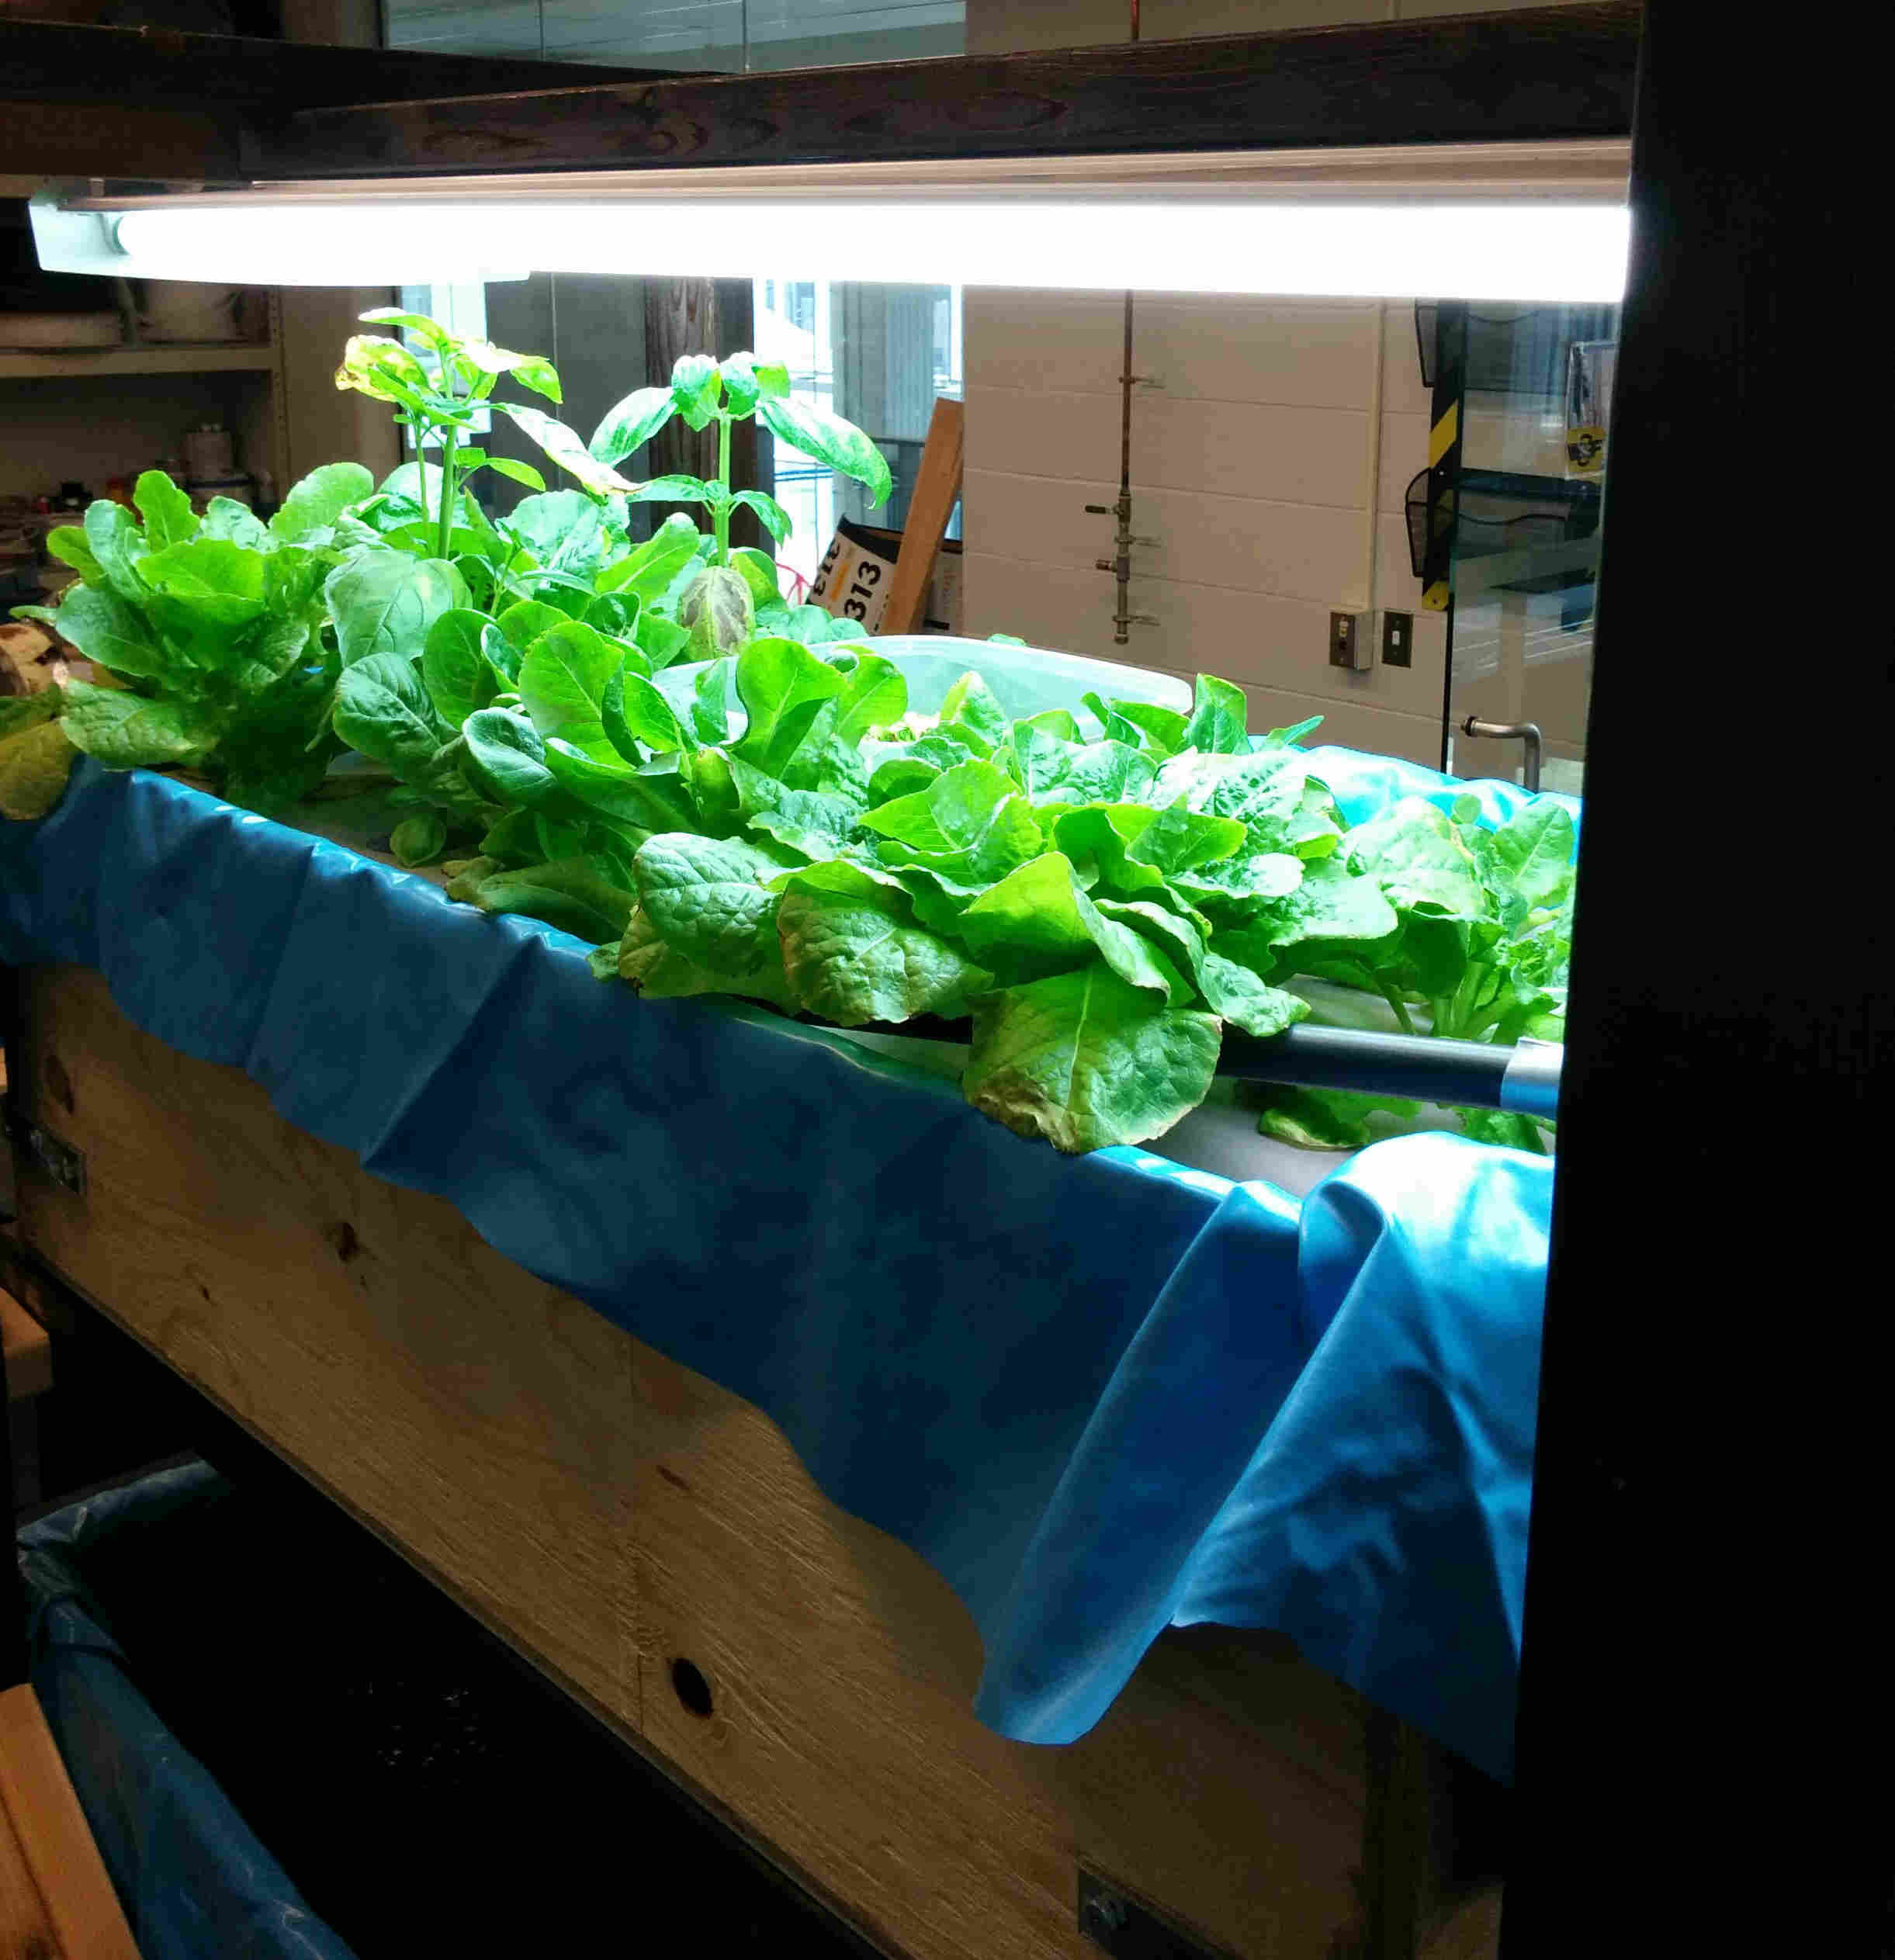 Fig 4: Deep water culture grow bed with plants on floating rafts.